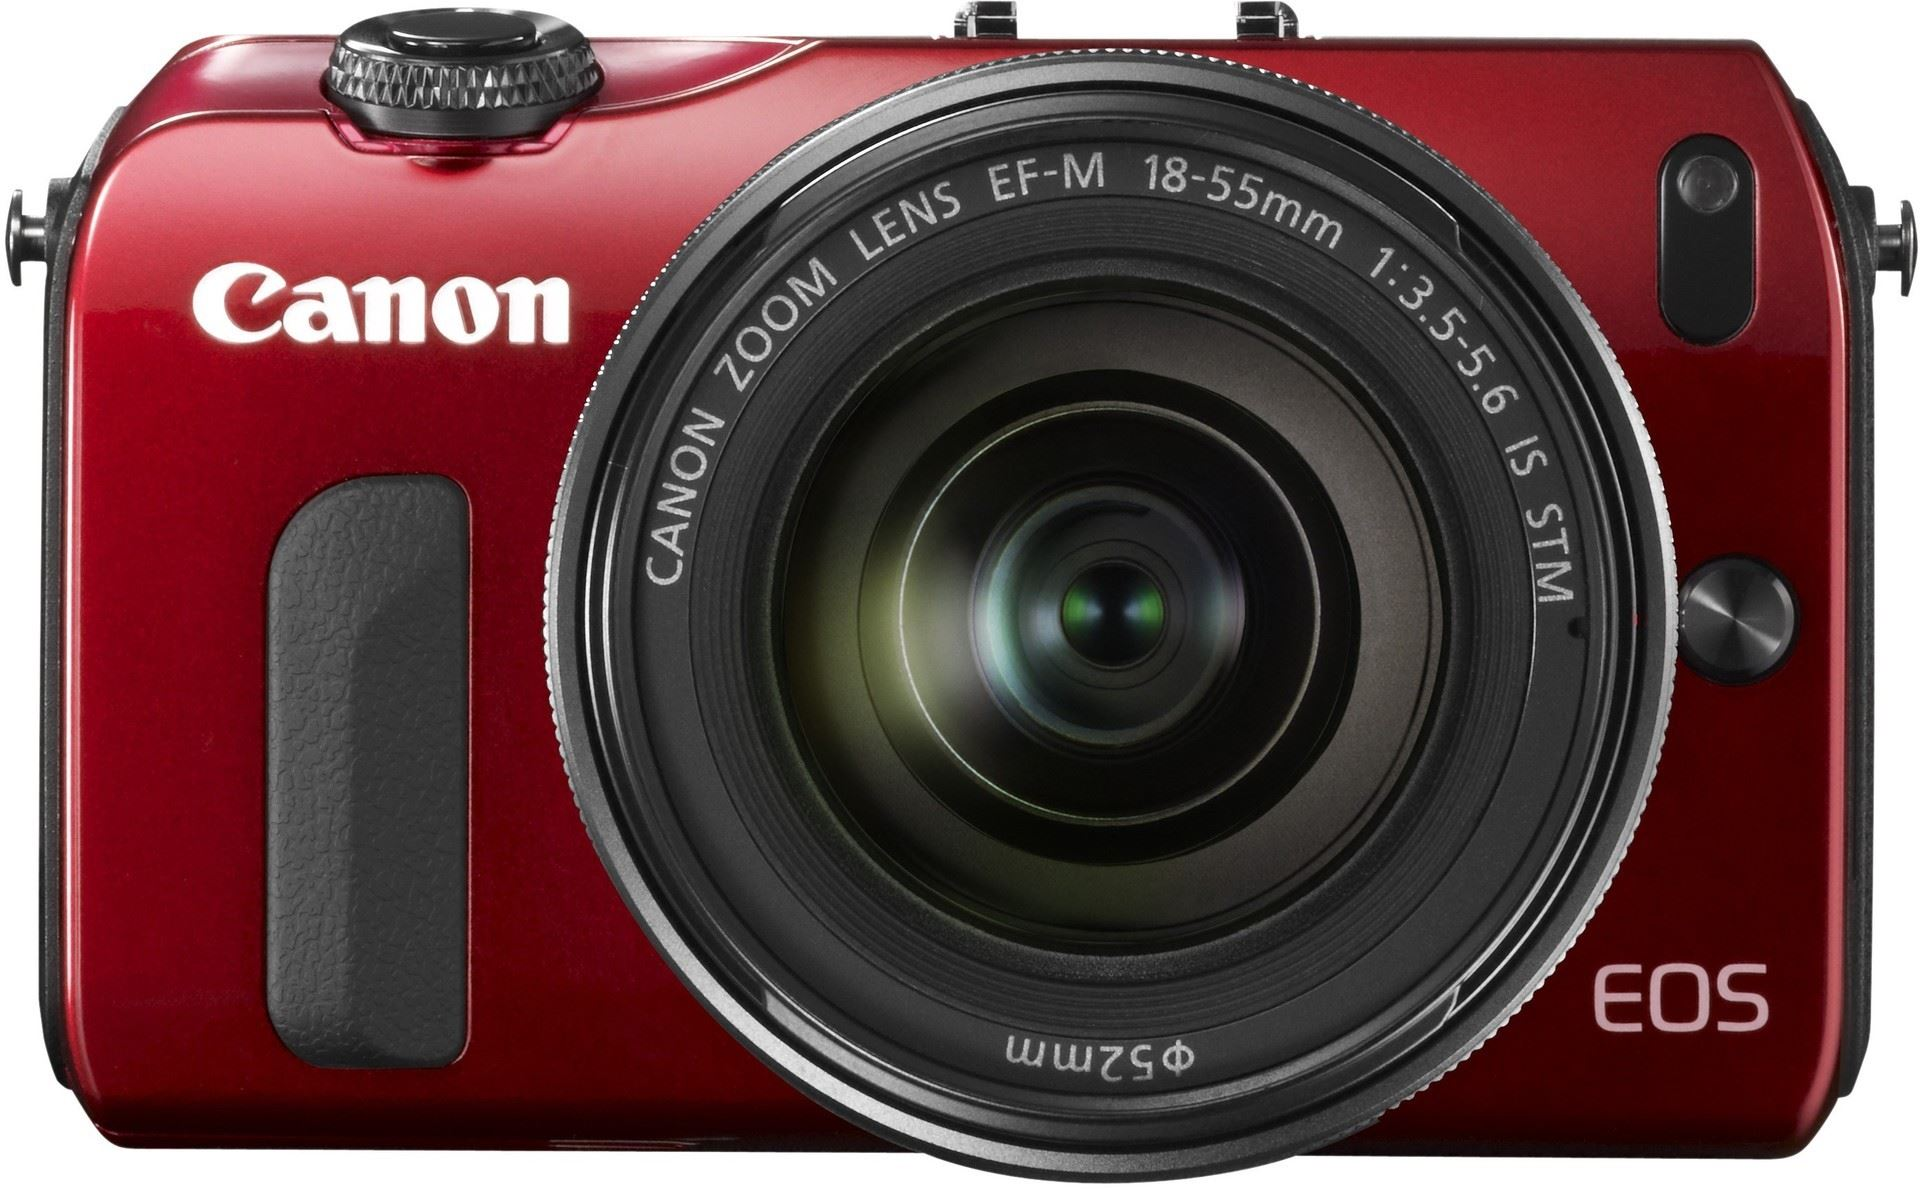 canon_eos_m_red_1855mm_kit-1.jpg